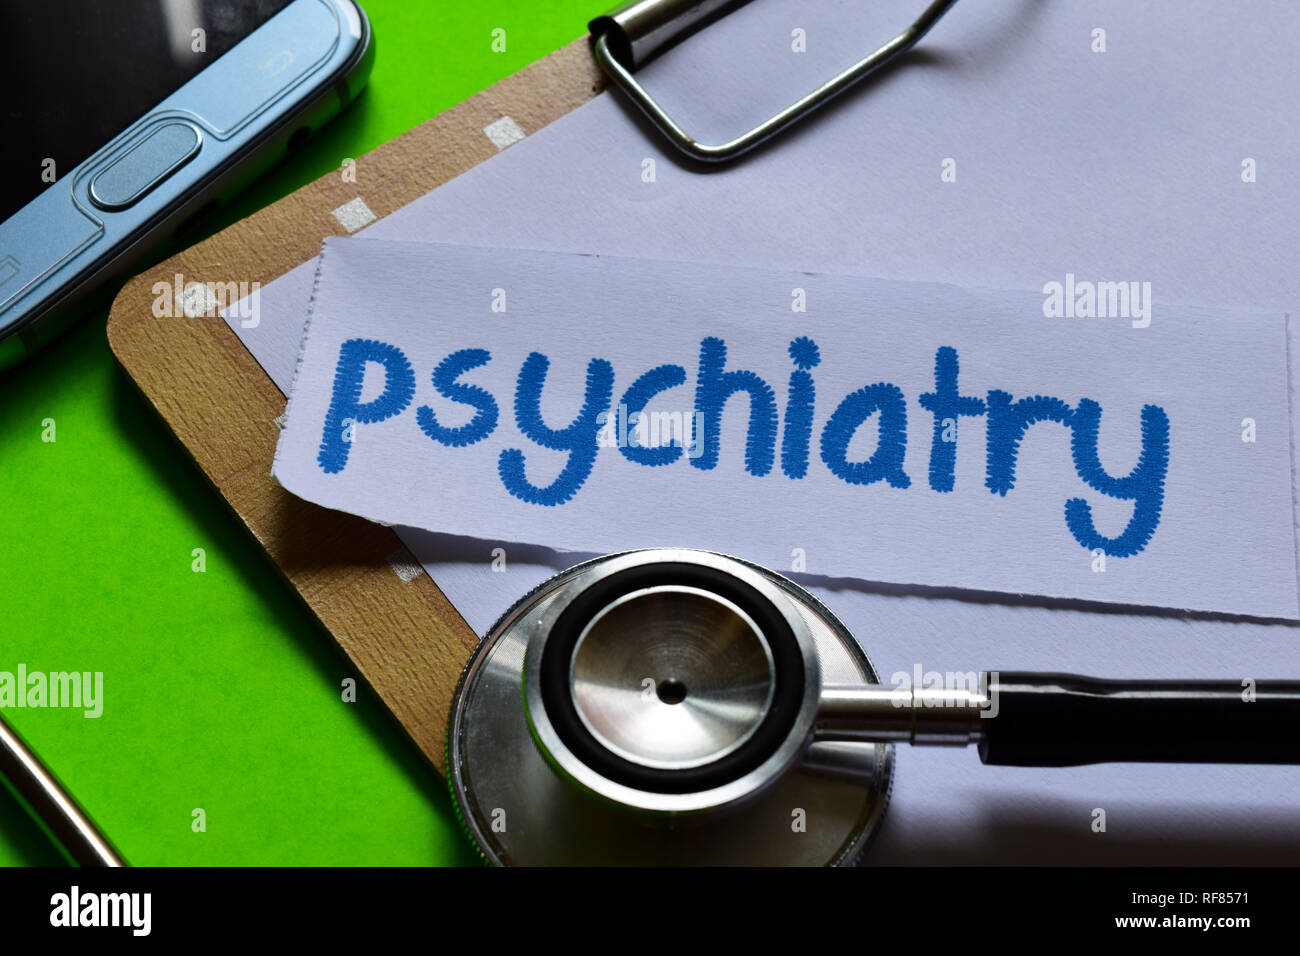 Psychiatry on healthcare concept inspiration with green background - Stock Image